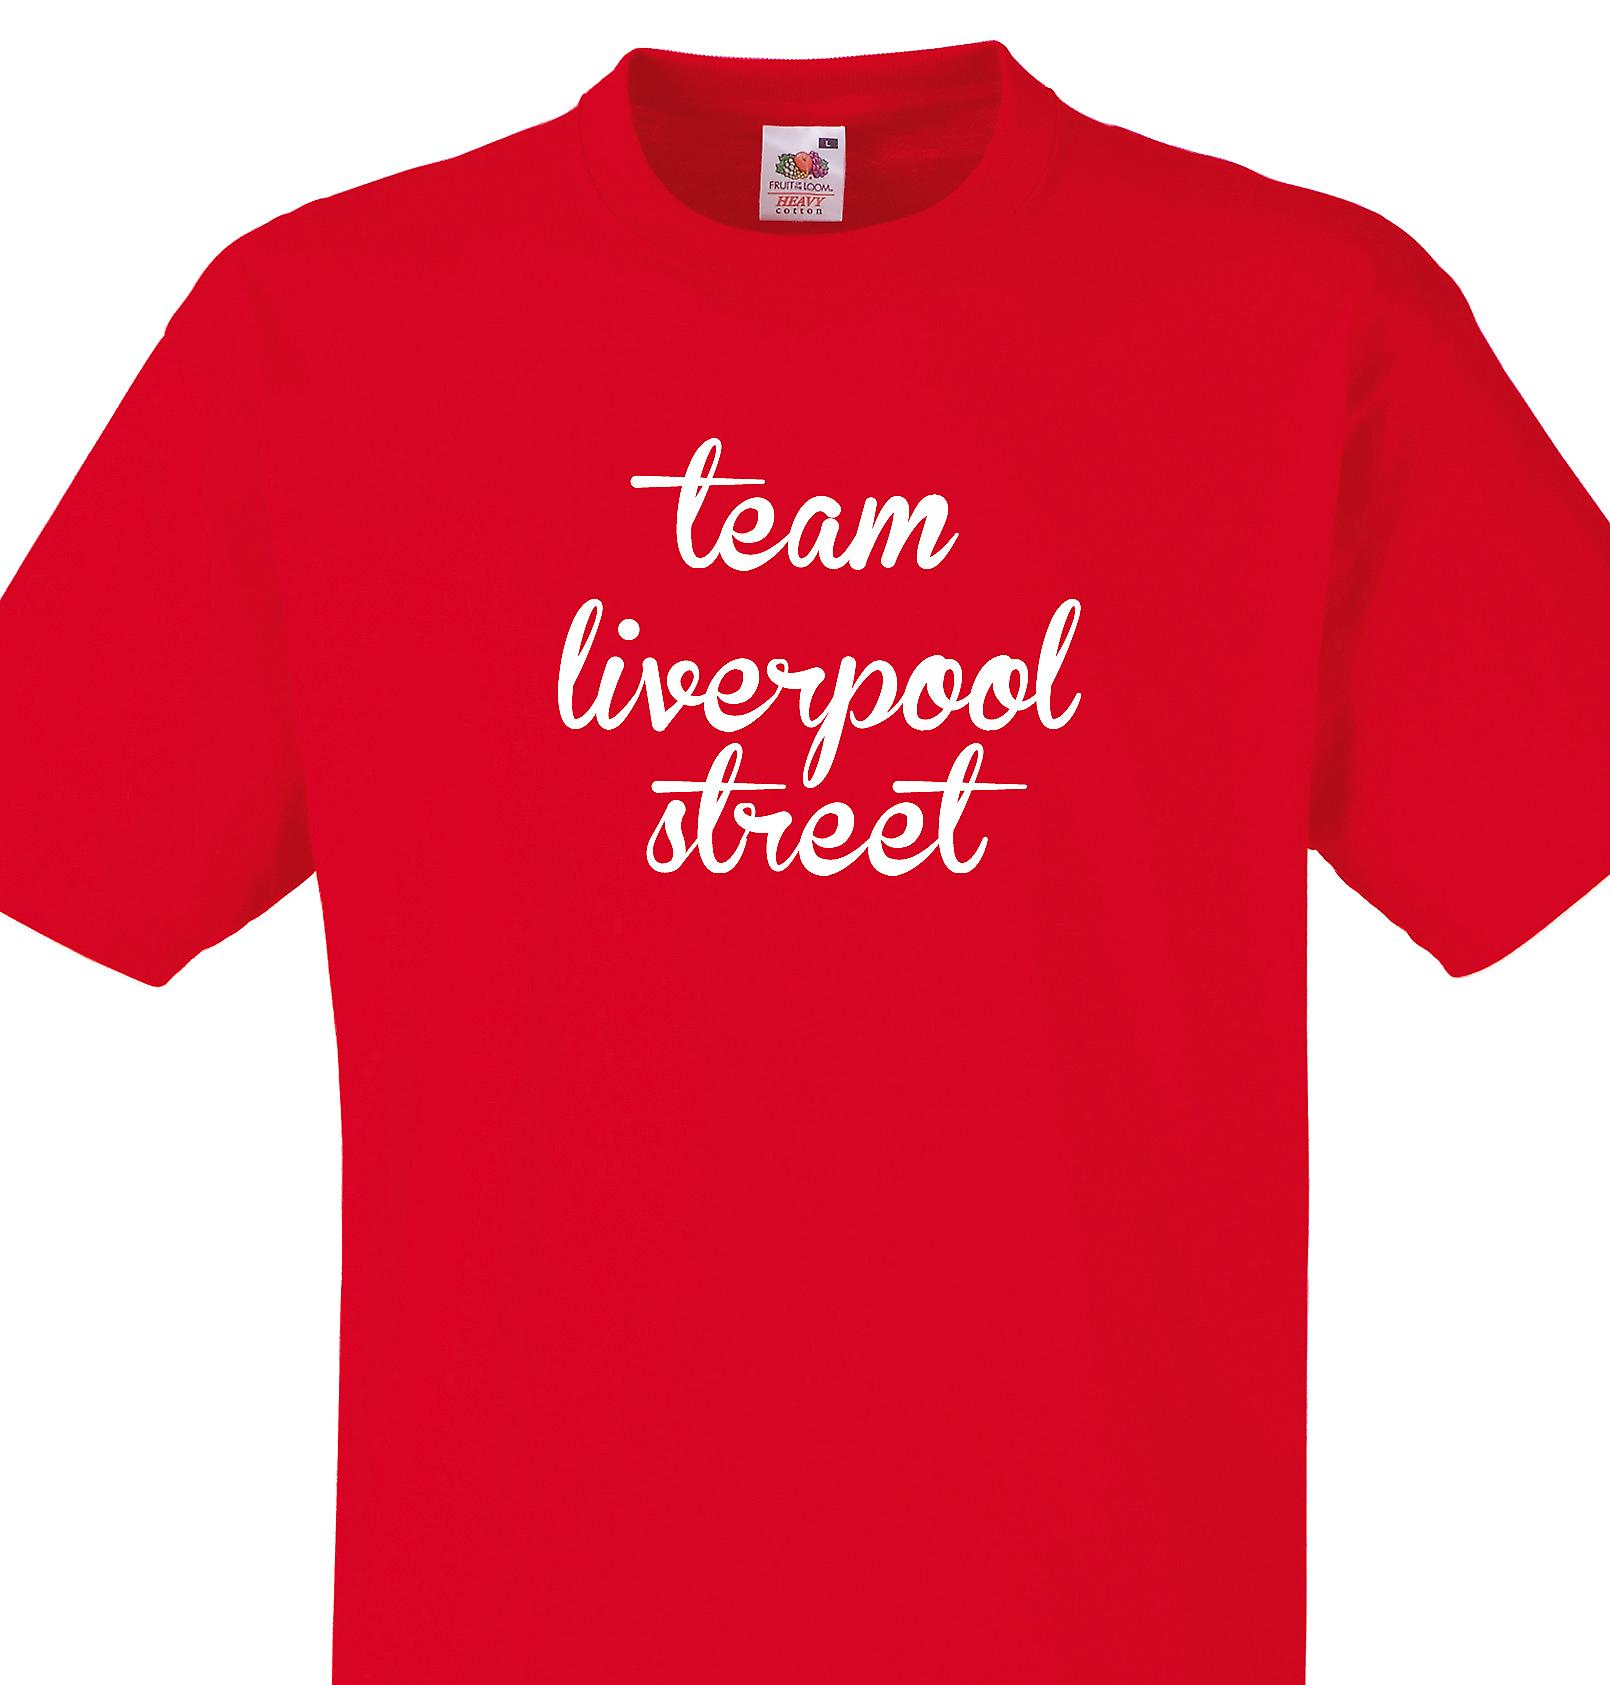 Squadra Liverpool street Red T-shirt